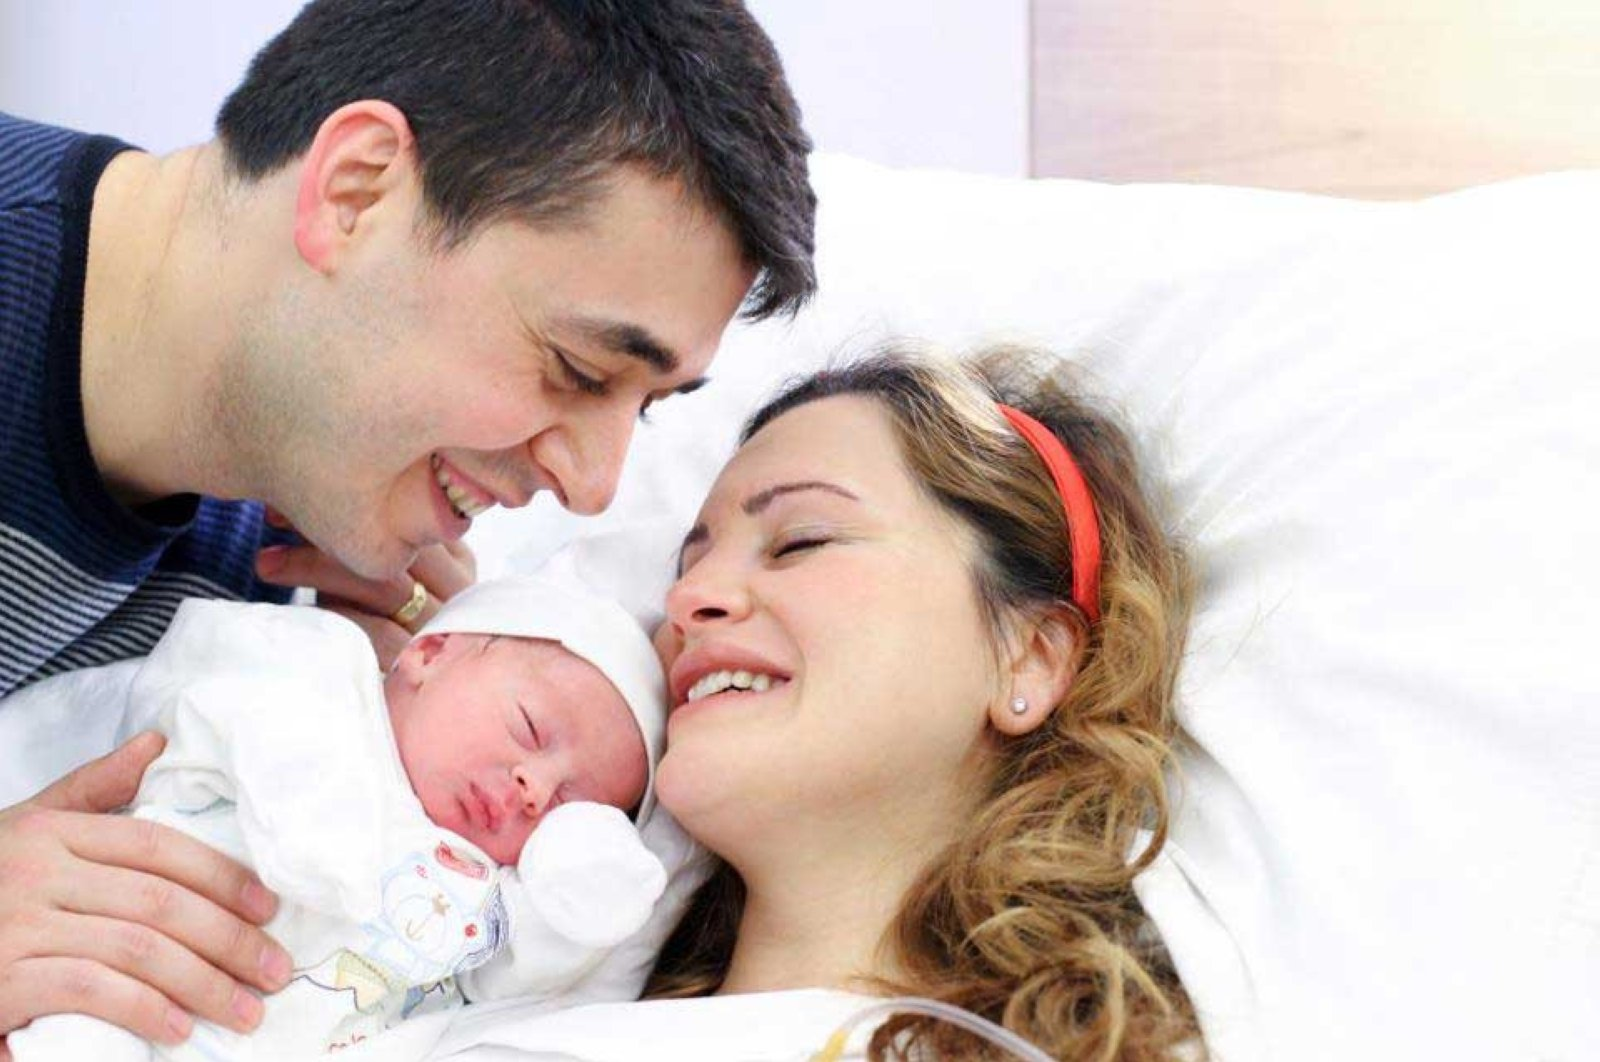 Turkish fertility drops sharply